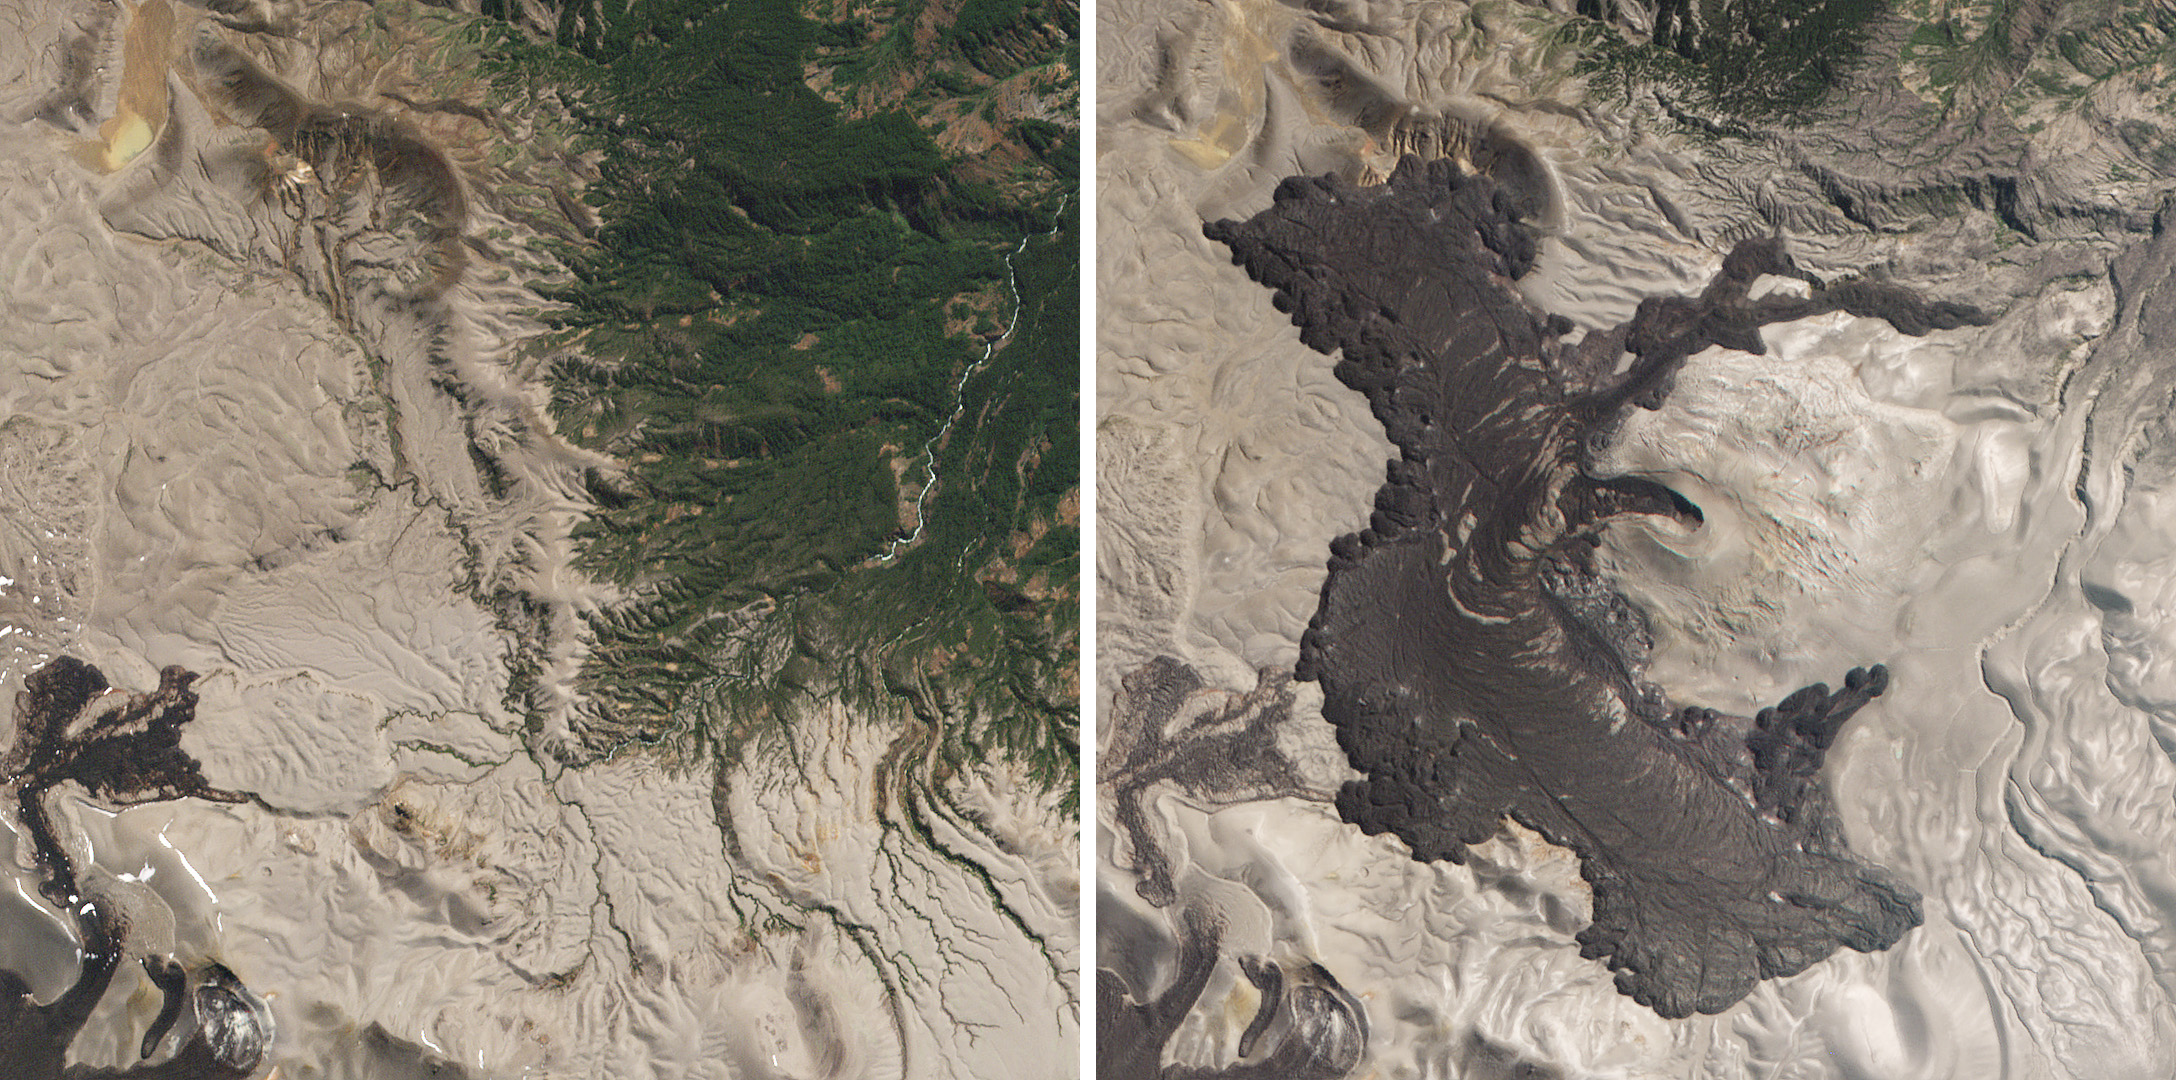 From June 2011 to April 2012, Puyehue-Cordón Caulle covered 16 square kilometers of the Andes in a lava flow about 30 meters thick. These RapidEye images show the area shortly before the eruption—on March 24, 2011 and 8 years later on March 10, 2019. (c) 2019, Planet Labs Inc. All Rights Reserved.